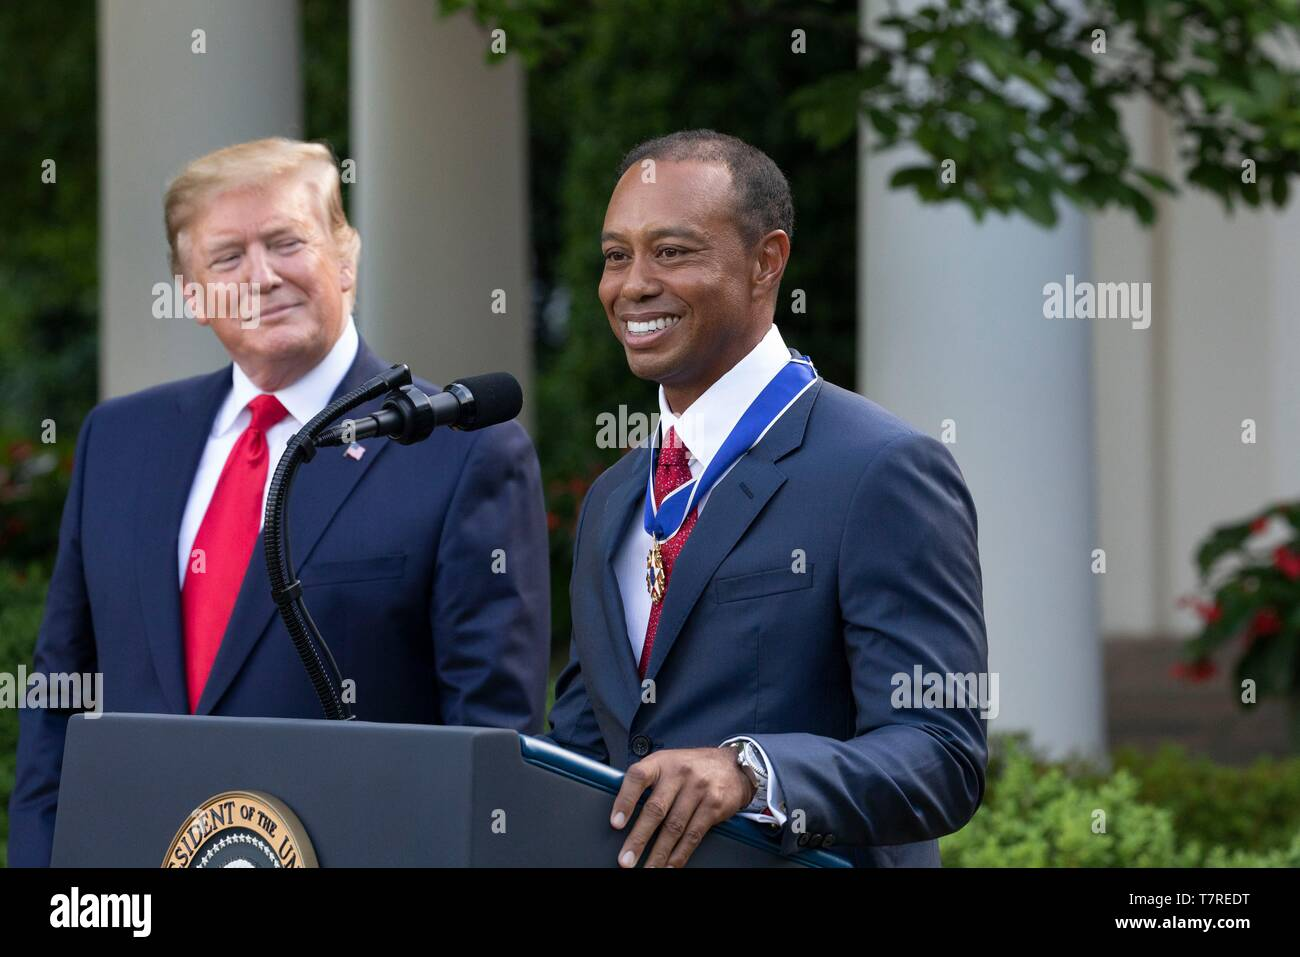 Golfer Tiger Woods delivers remarks as U.S President Donald Trump looks on after he received the Presidential Medal of Freedom during a Rose Garden ceremony at the White House May 6, 2019 in Washington, DC. - Stock Image